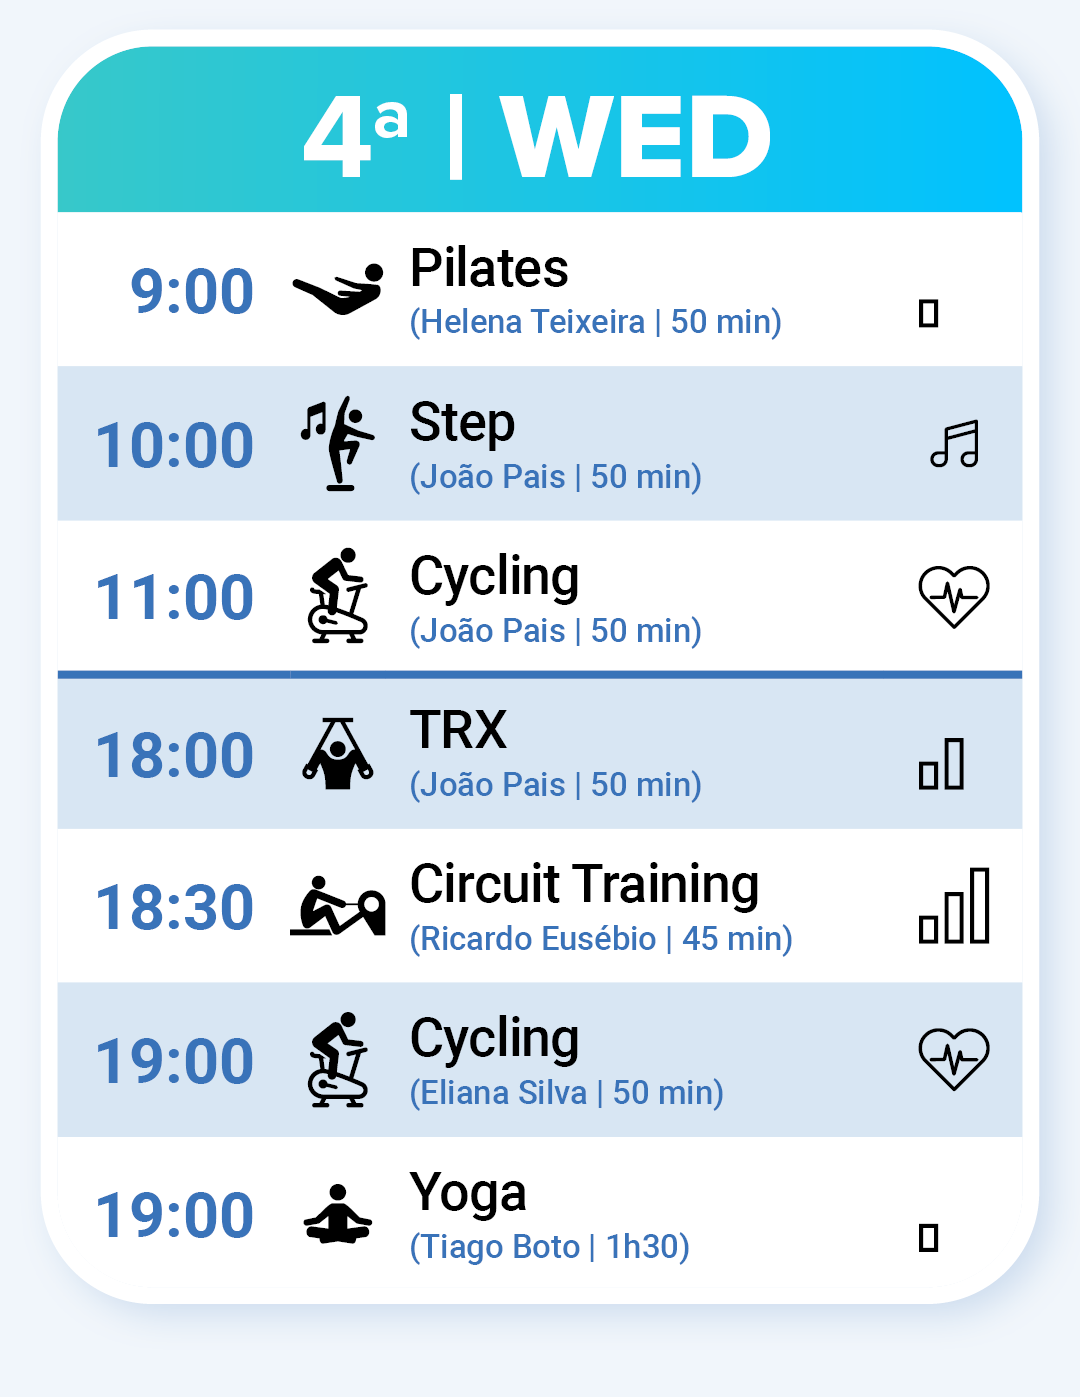 Fitness Classes on Wednesday: Pilates, Step, Cycling, TRX, Circuit Training, Cycling and Yoga.